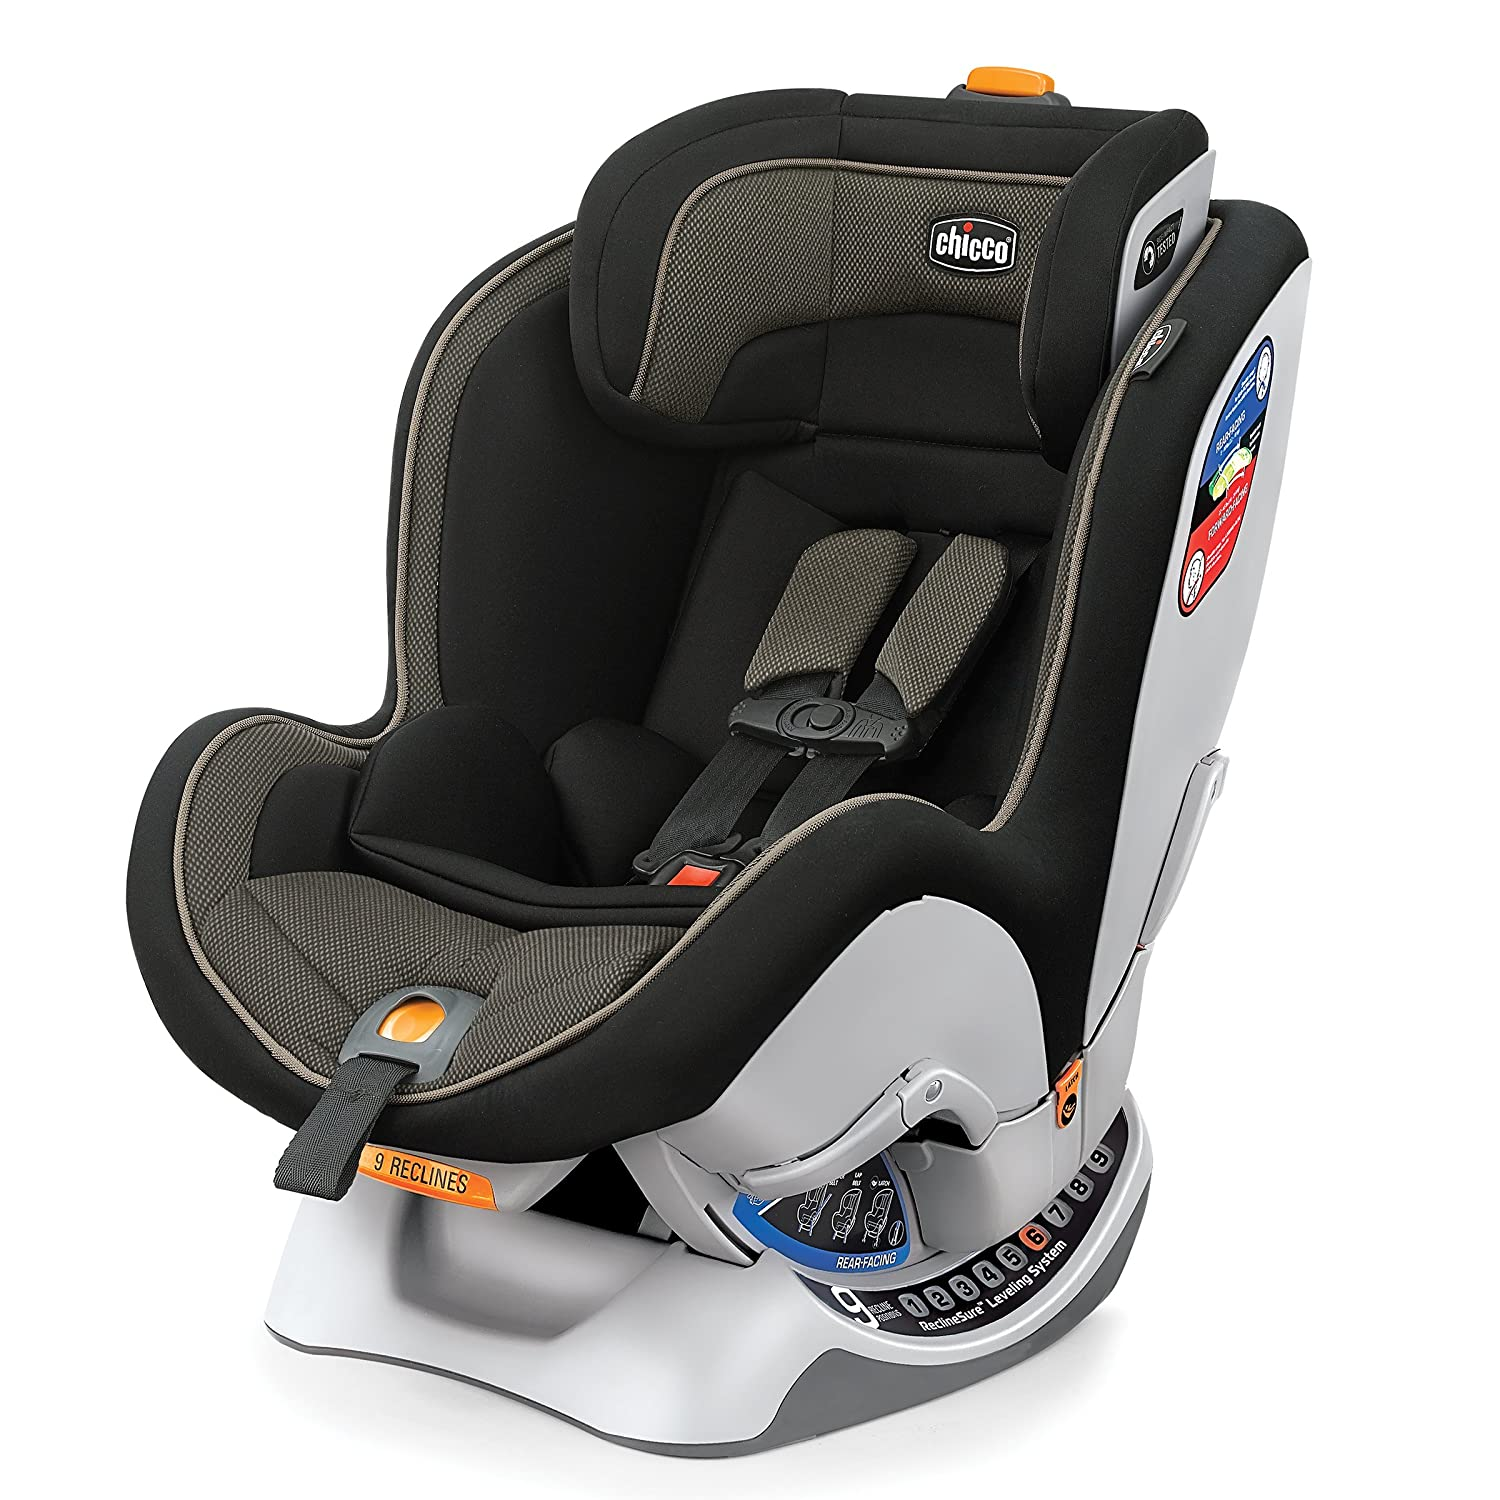 Amazon.com : Chicco NextFit Convertible Car Seat, Matrix : Baby